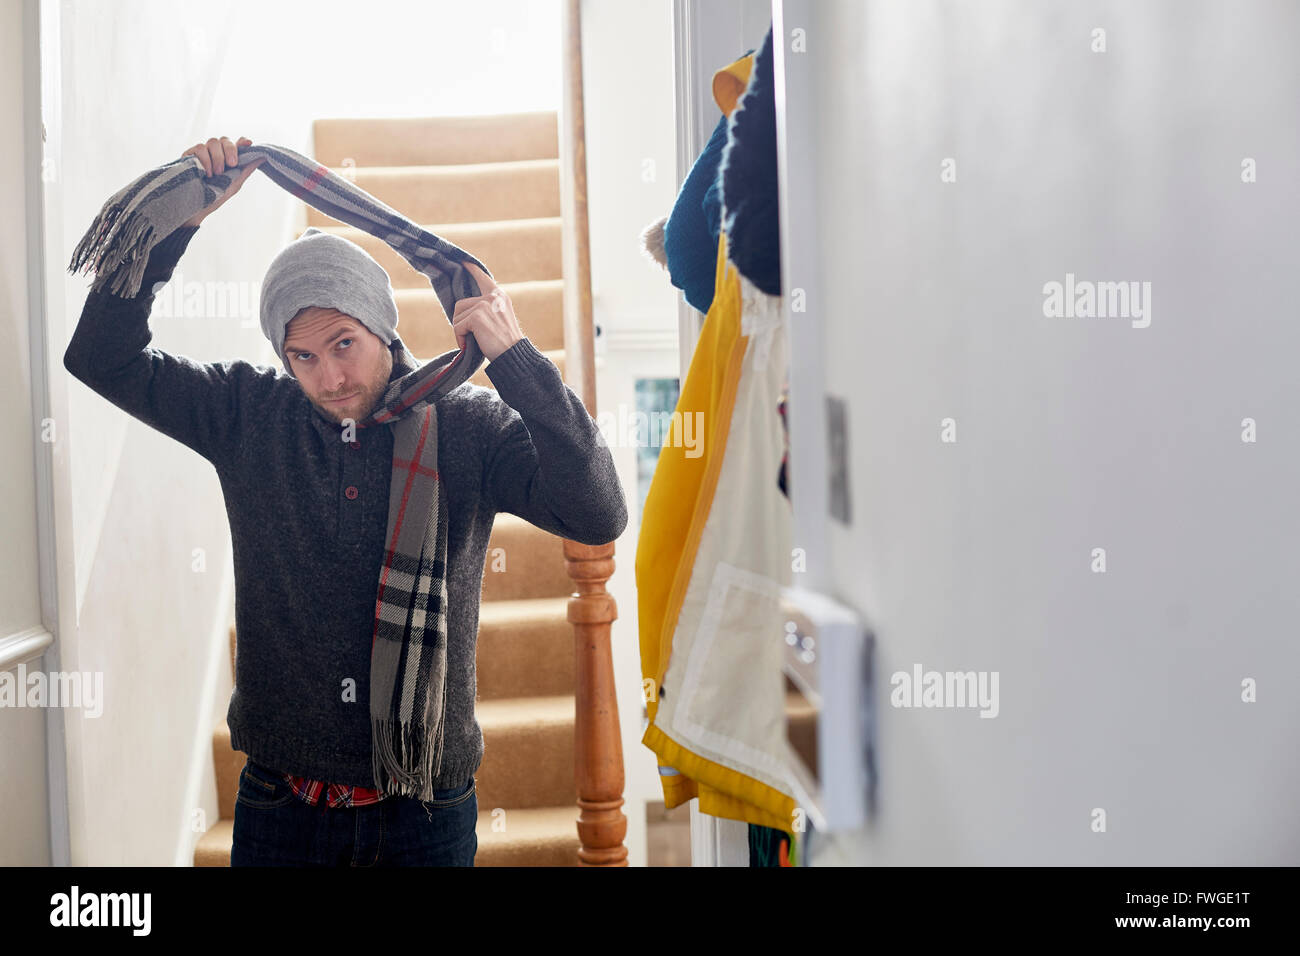 A man in a winter coat, hat and scarf arriving home, taking his scarf off. Stock Photo